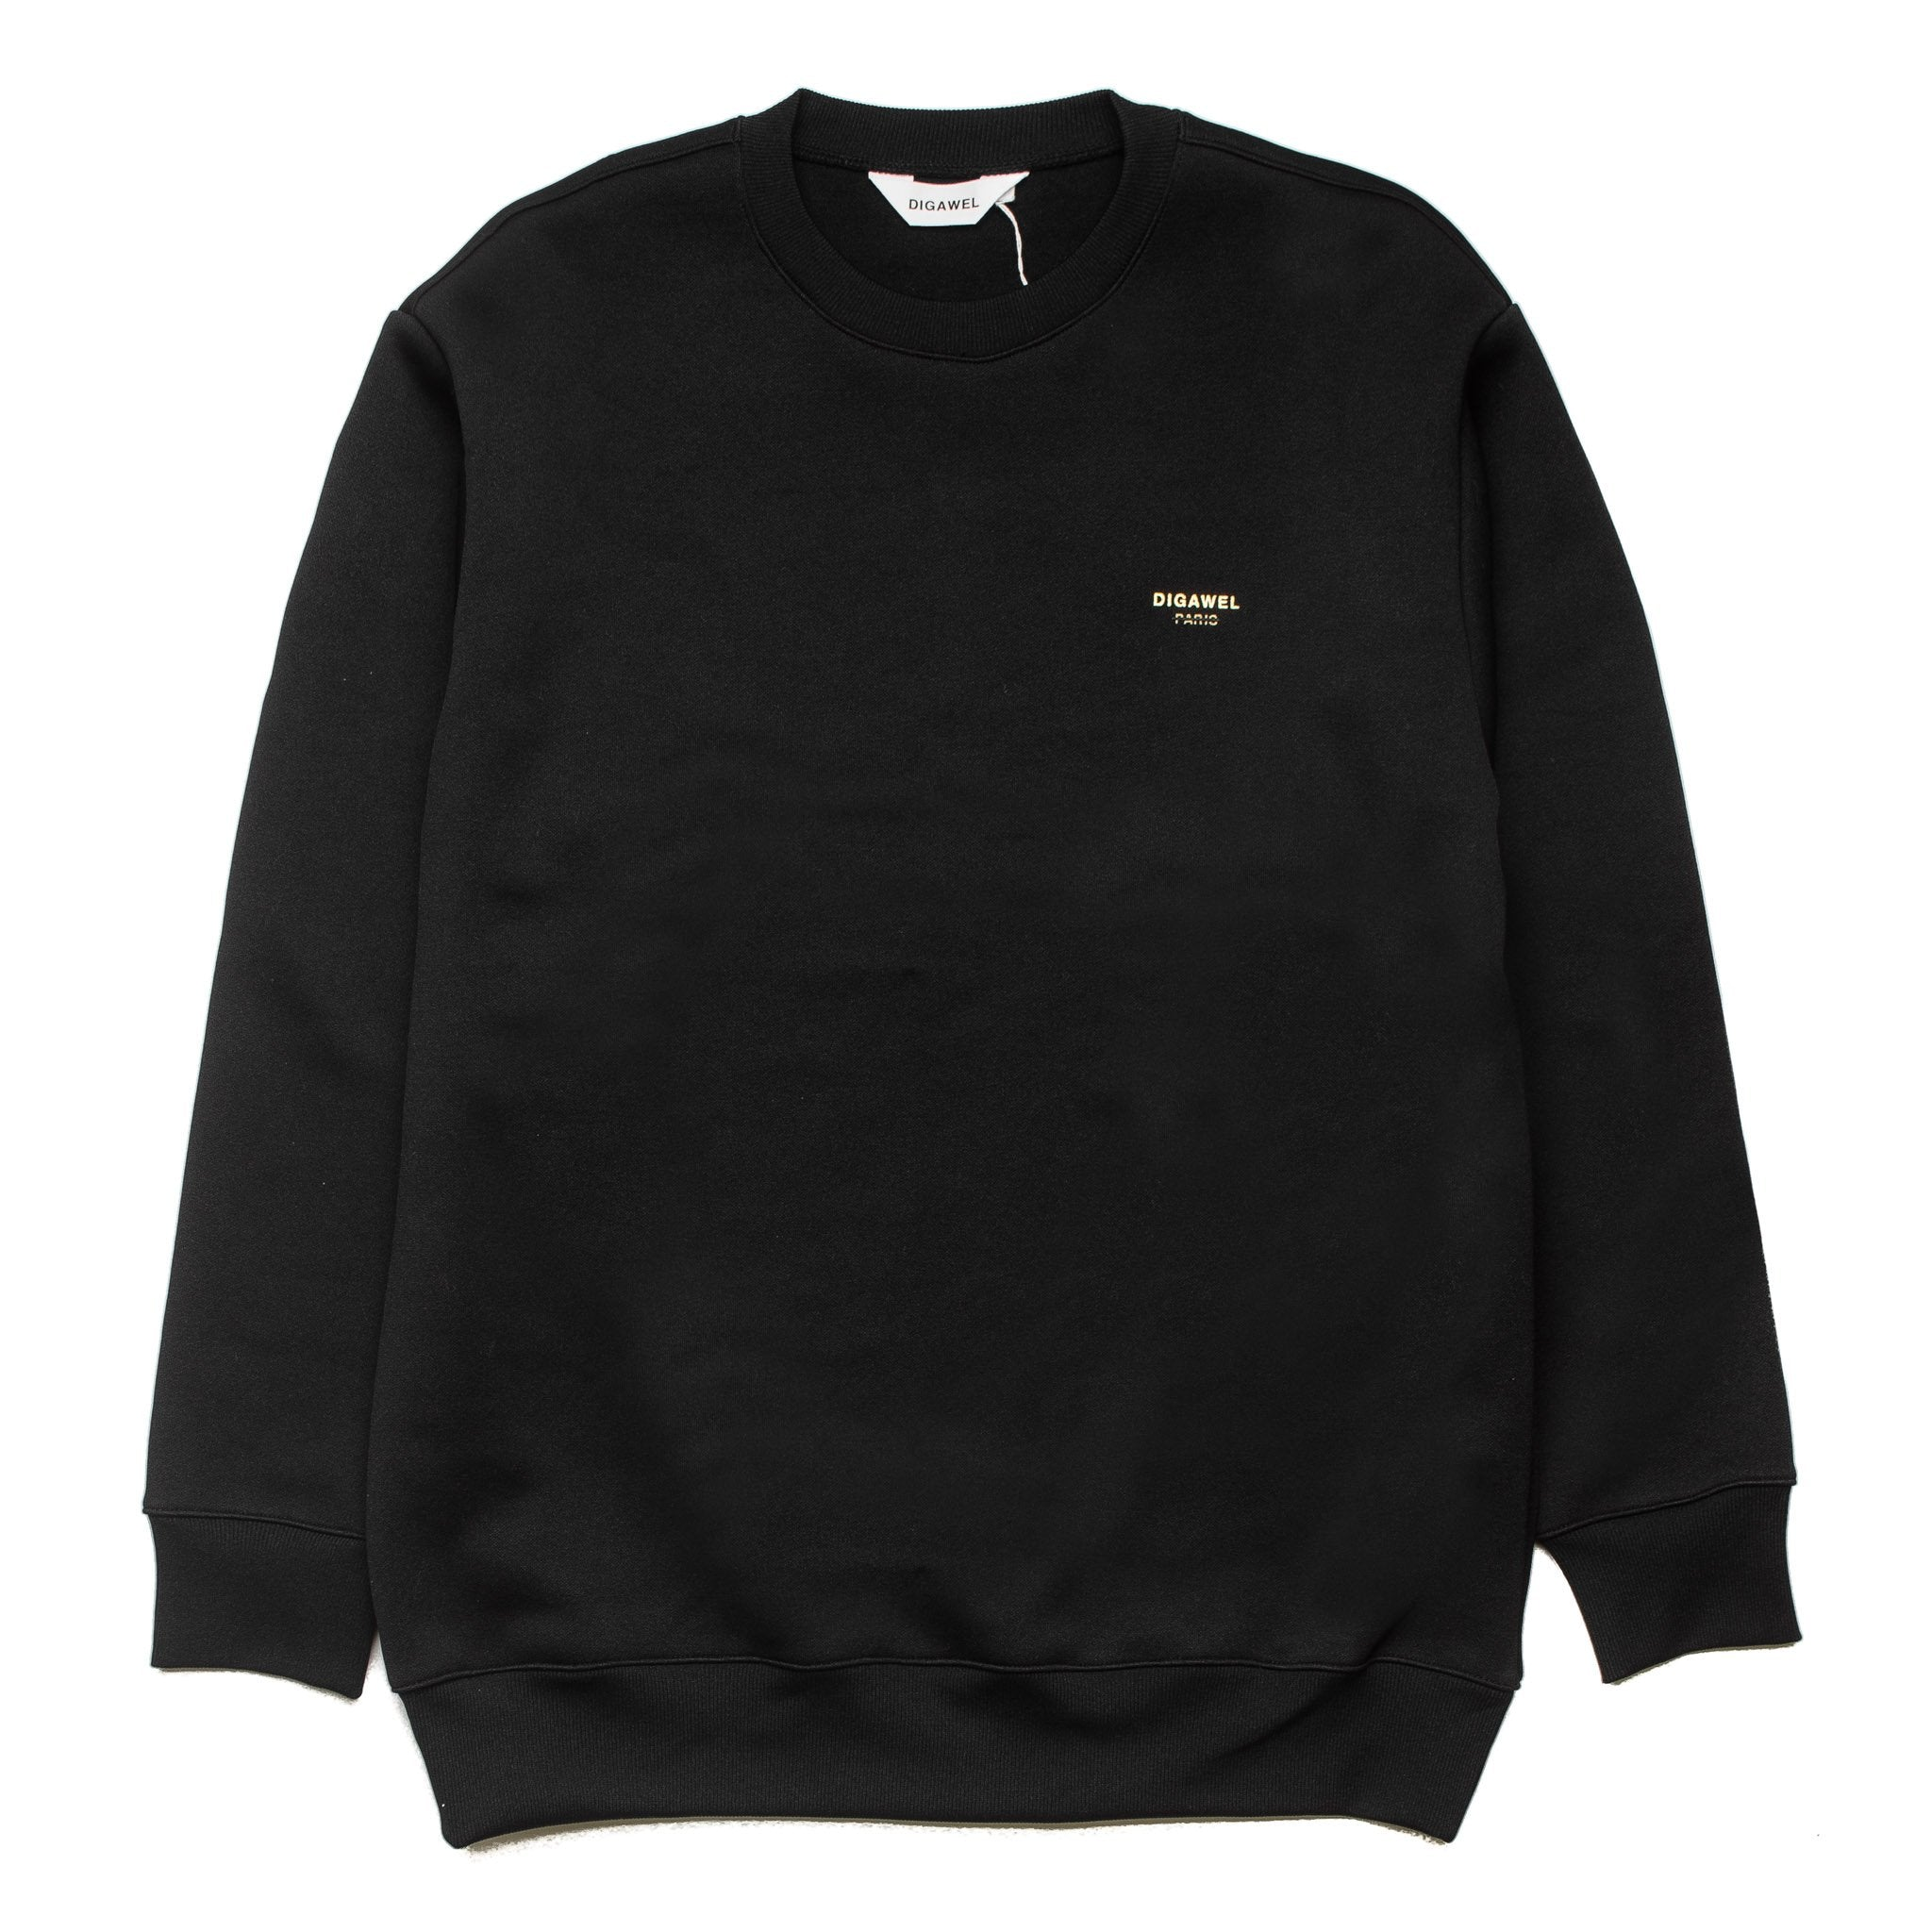 Not Paris L/S DWROA061 Black